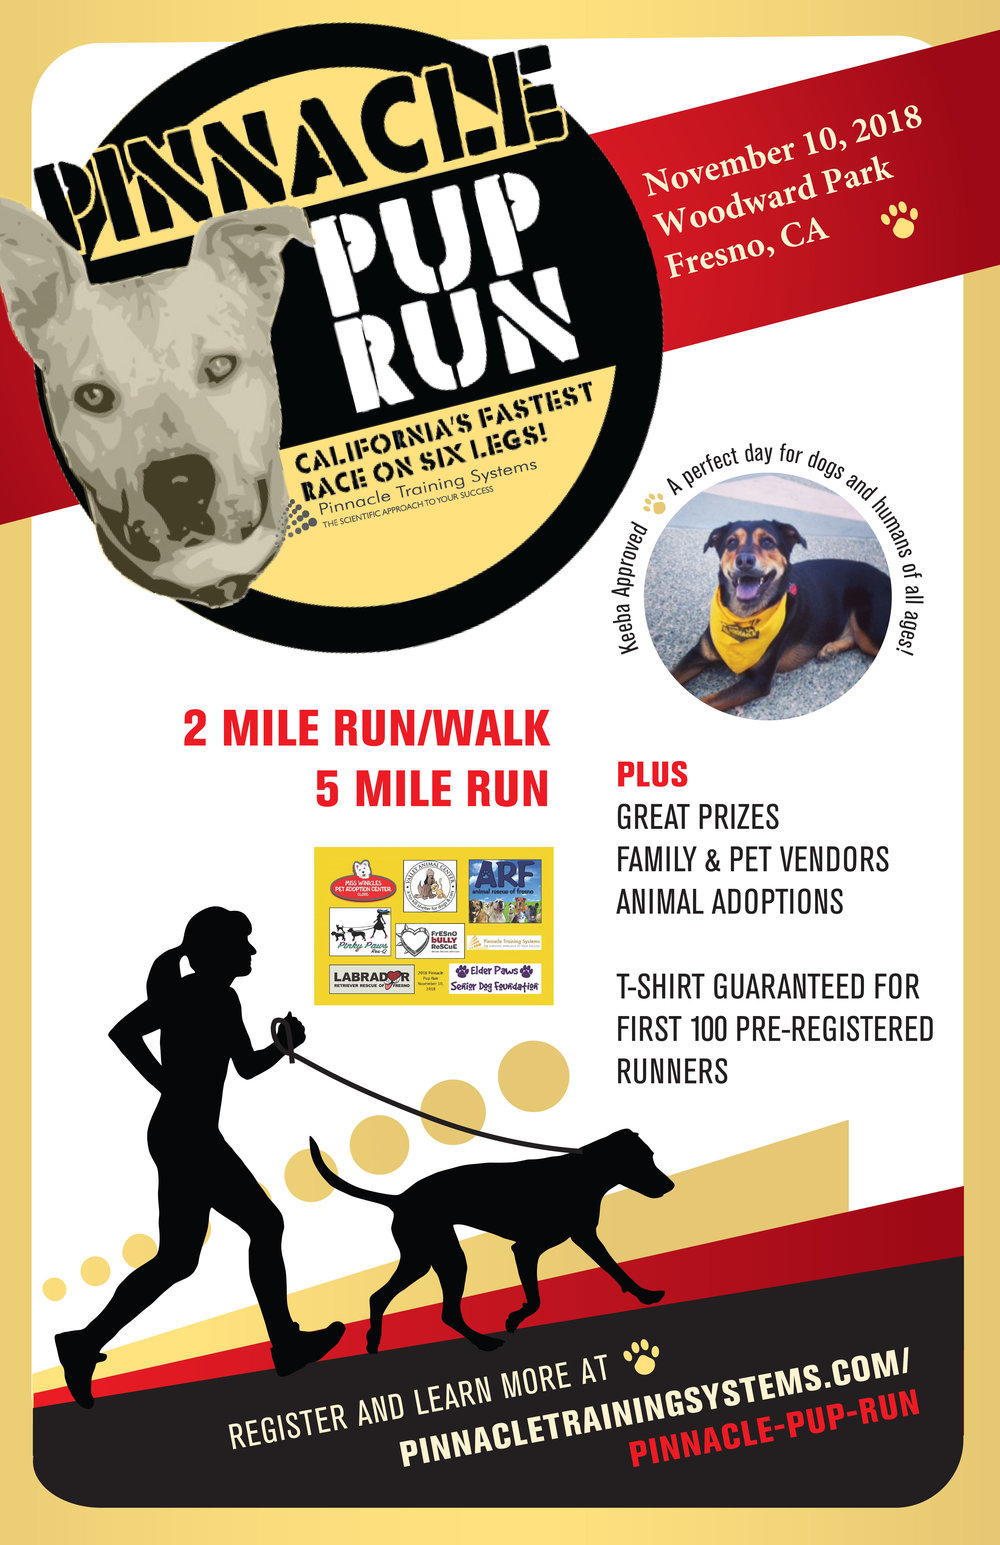 Fresno Humane is excited to be participating in this years Pinnacle Pup Run.  Now here is  message from the wonderful people at Pinnacle Training.     Pinnacle Pup Run 2018   We are excited to announce our 2018 Pinnacle Pup Run that will be held on November 10, 2018. Click   here    to register for this annual event. You can also get more information on our Facebook page      Can't make it but still want to show your support? It's not too late to make a donation!  100% of all donations and registrations will be divided among all shelters in attendance of the even